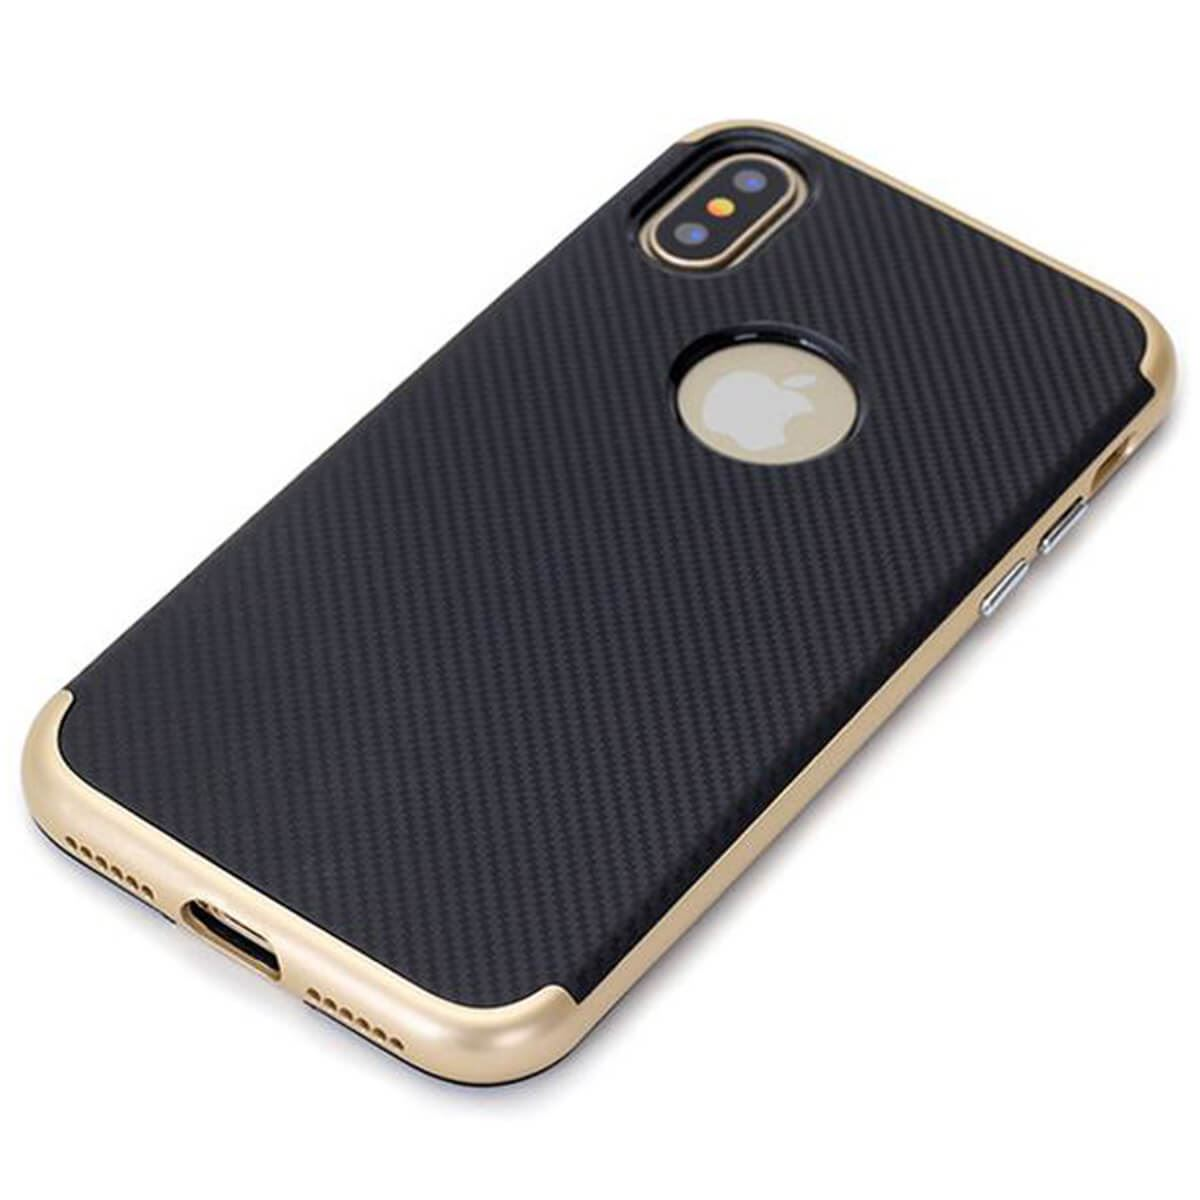 Case-For-Apple-iPhone-10-X-8-7-6s-5s-Luxury-Carbon-Fibre-Bumper-Hard-Back-Cover thumbnail 3